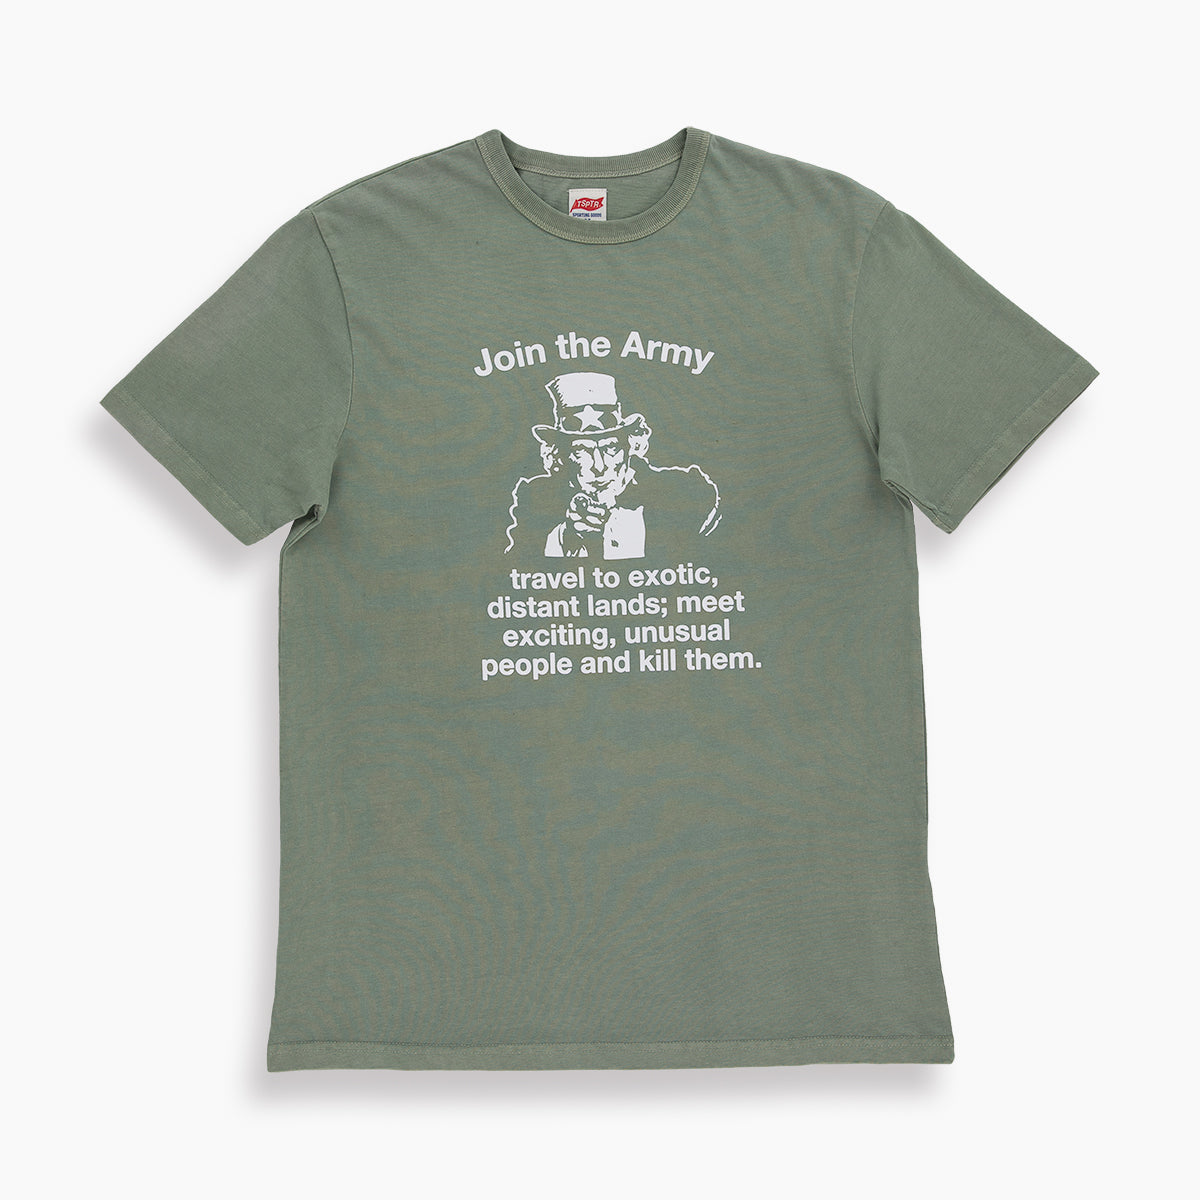 JOIN THE ARMY TEE